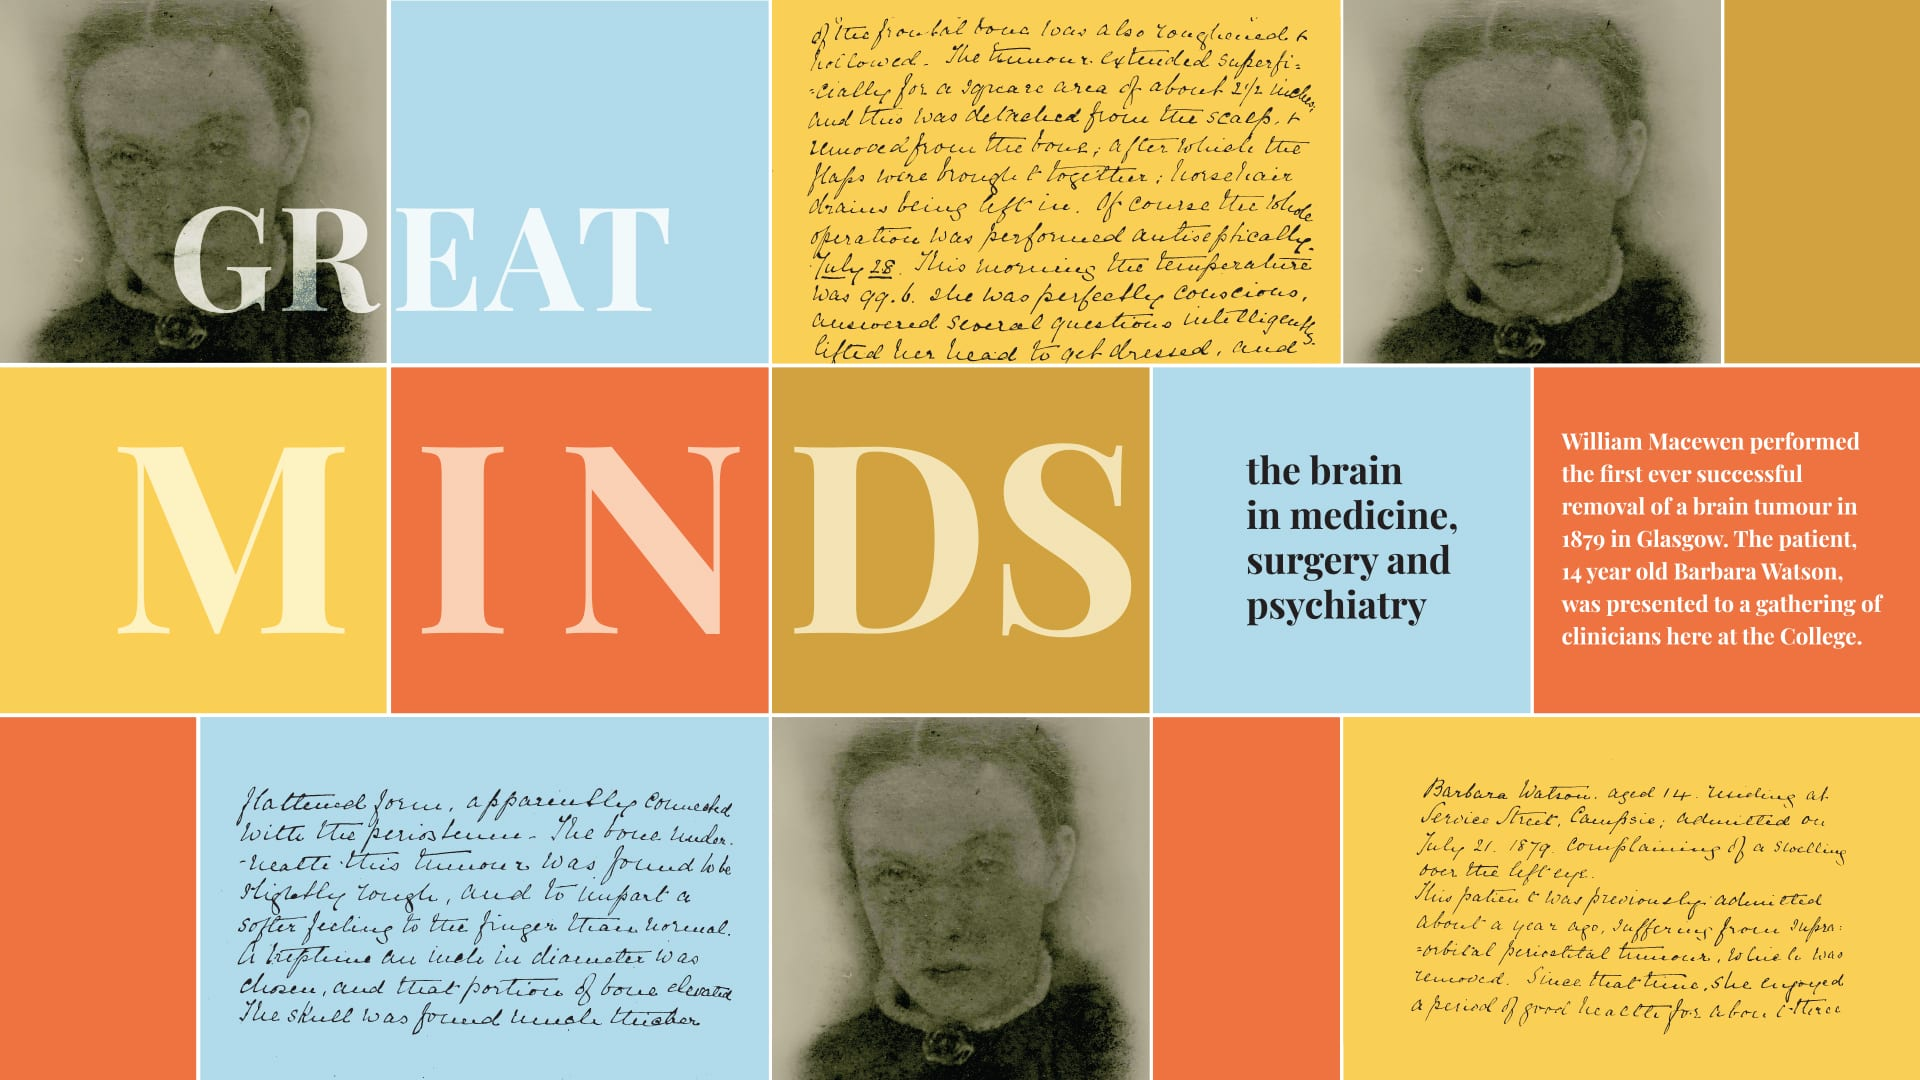 Great Minds: The Brain in Medicine, Surgery and Psychiatry